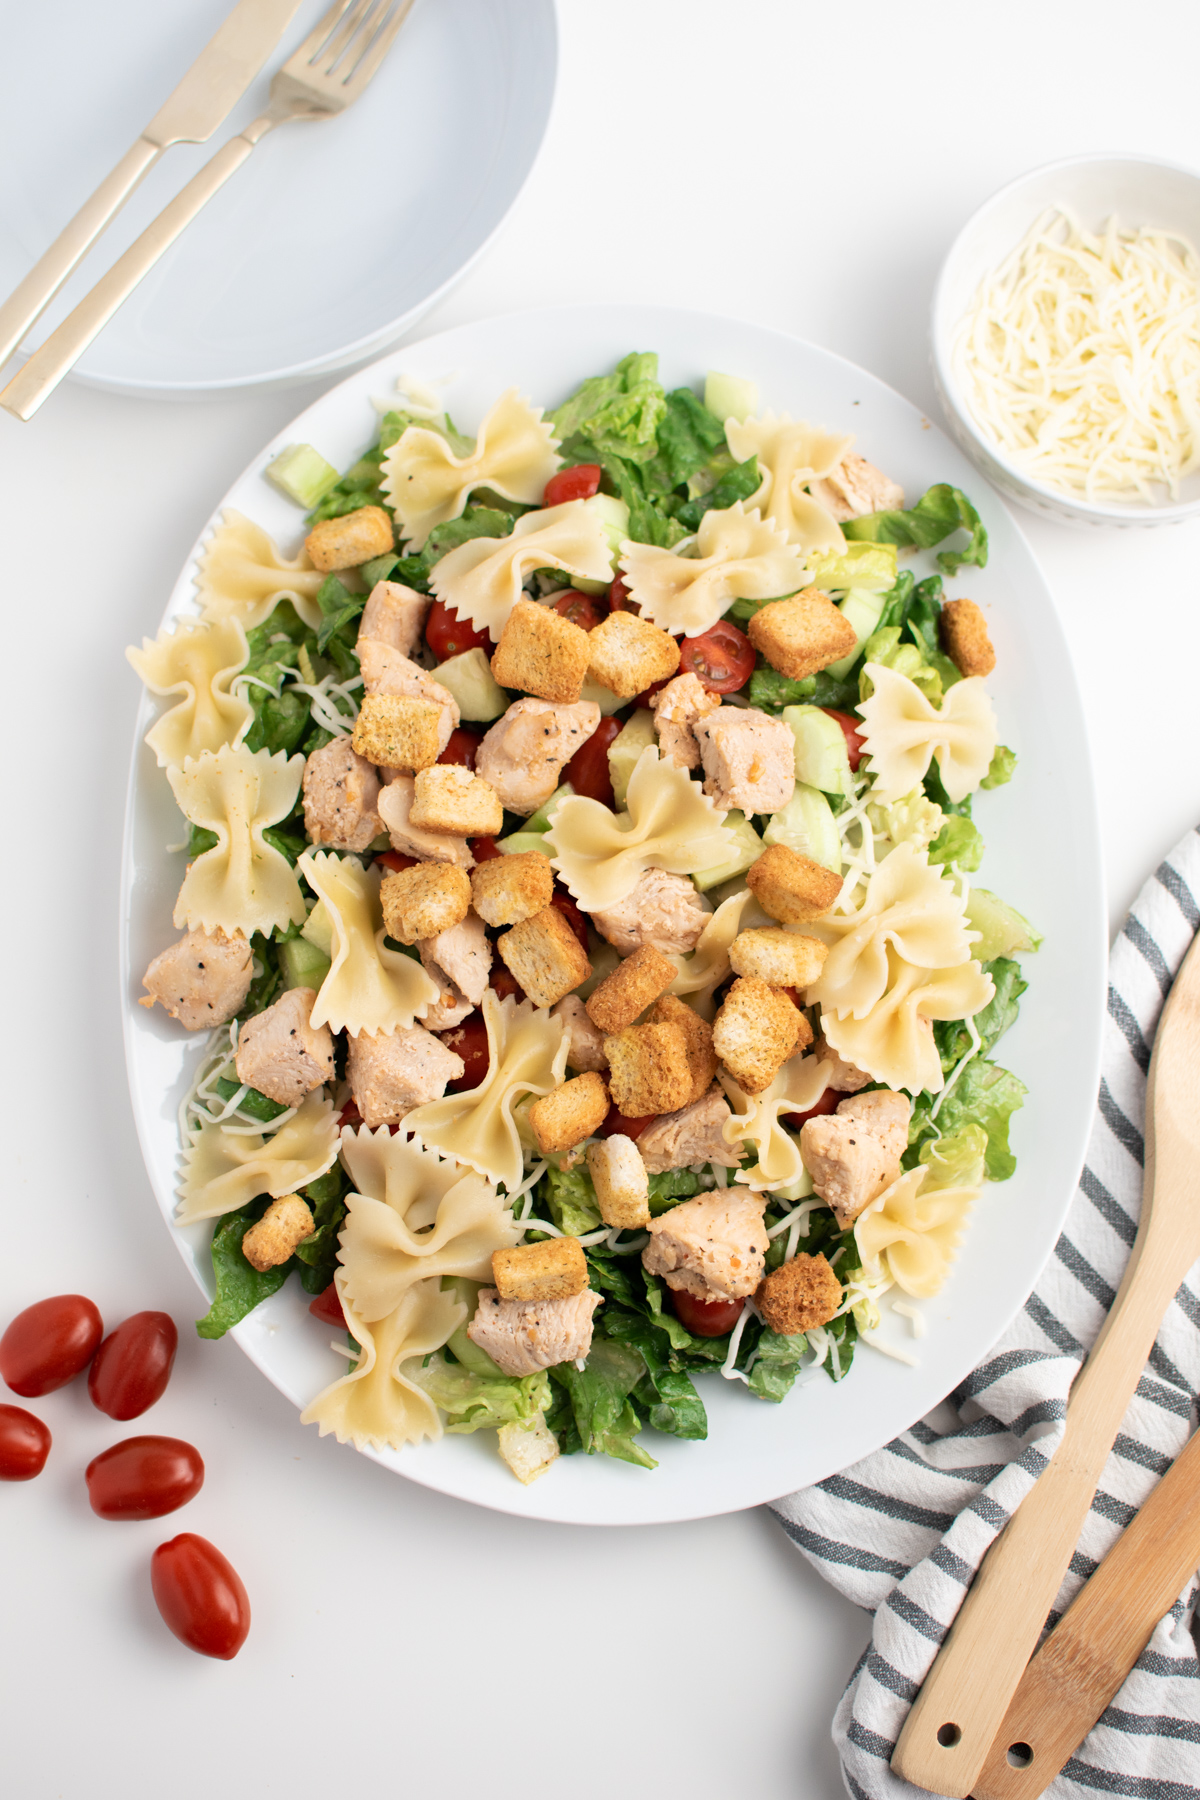 Chicken Caesar pasta salad on large white platter next to kitchen towel and wooden spoon.